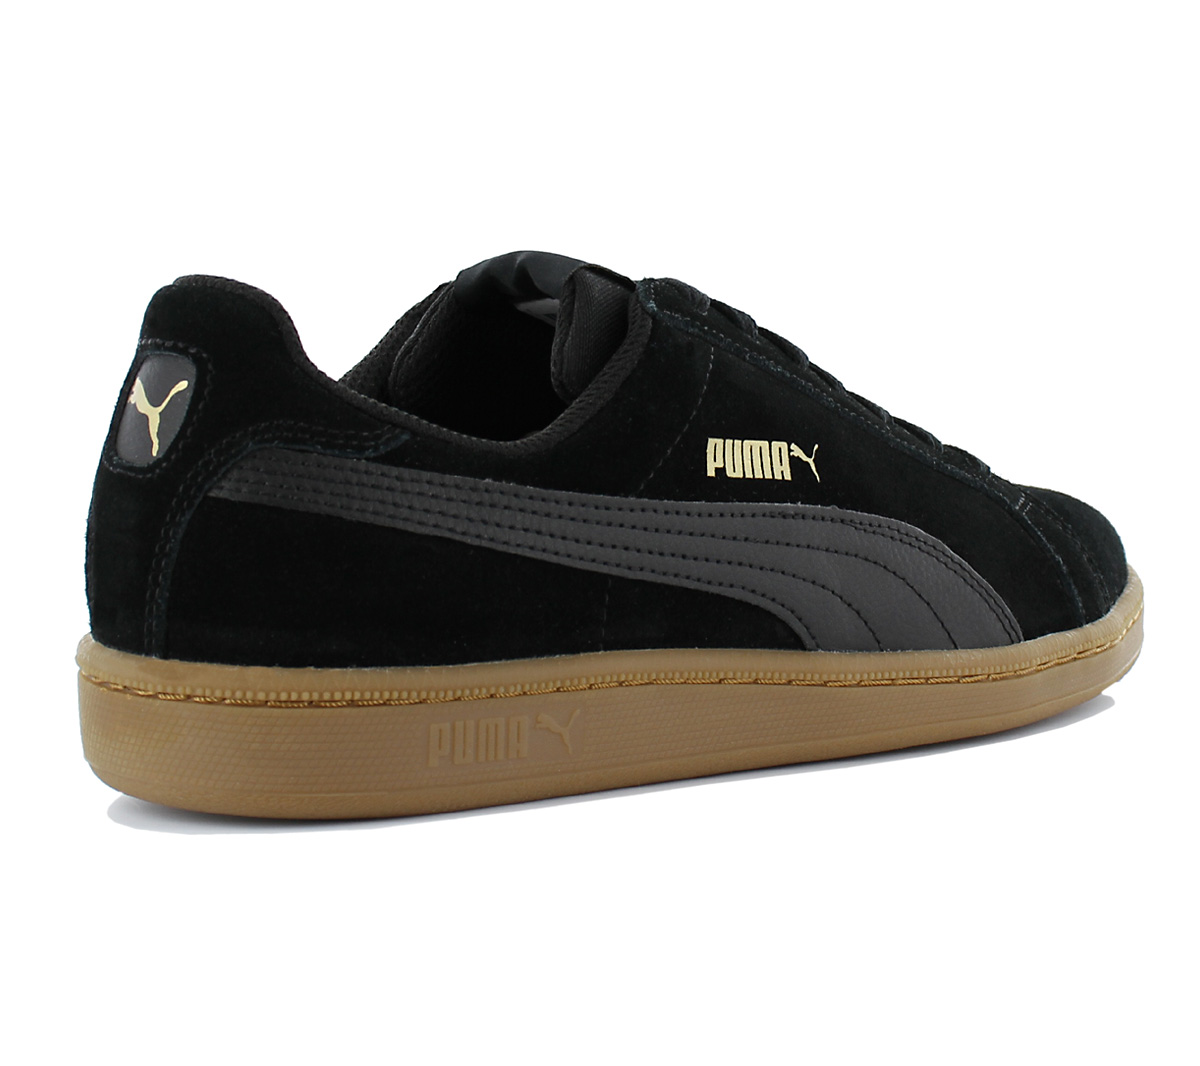 32615718a5a Puma Smash Sd Men s Sneakers Shoes Black Suede Trainers 361730-30 ...